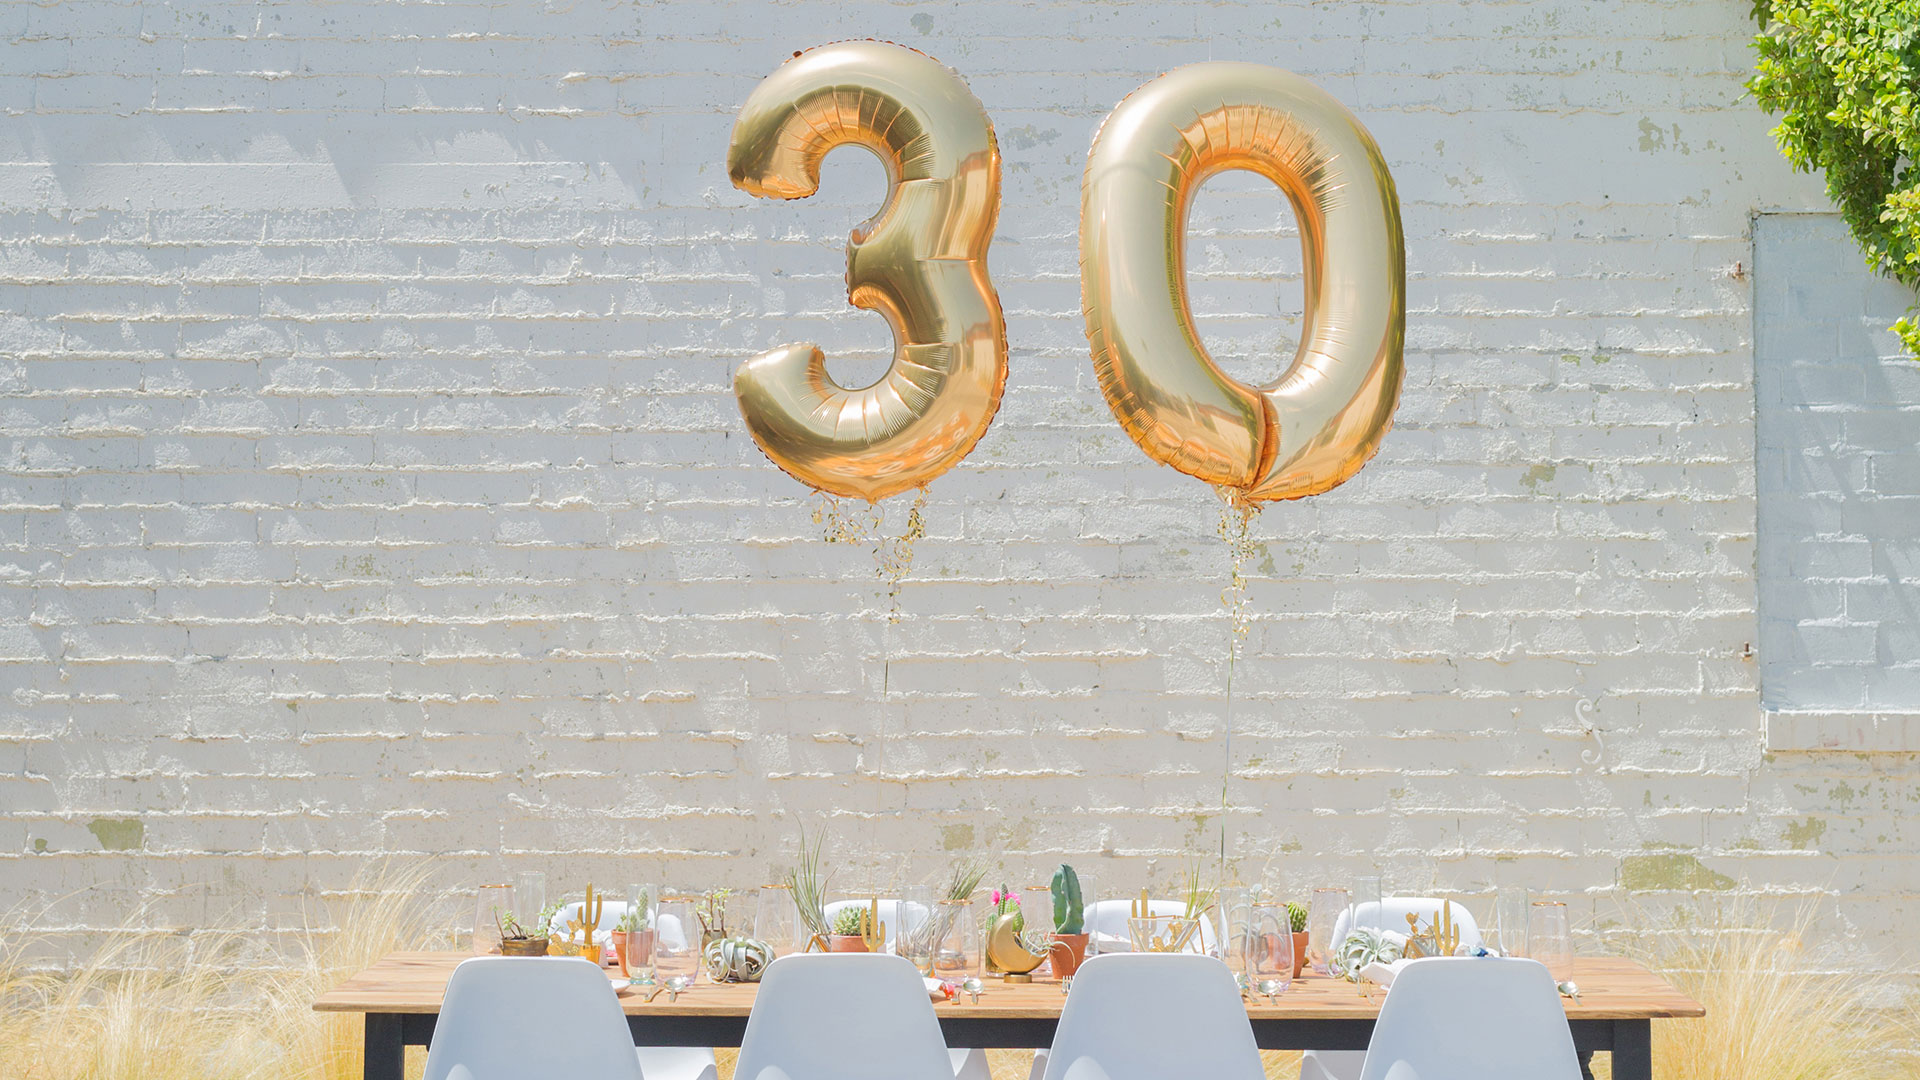 plan a picture perfect birthday party in greater palm springs